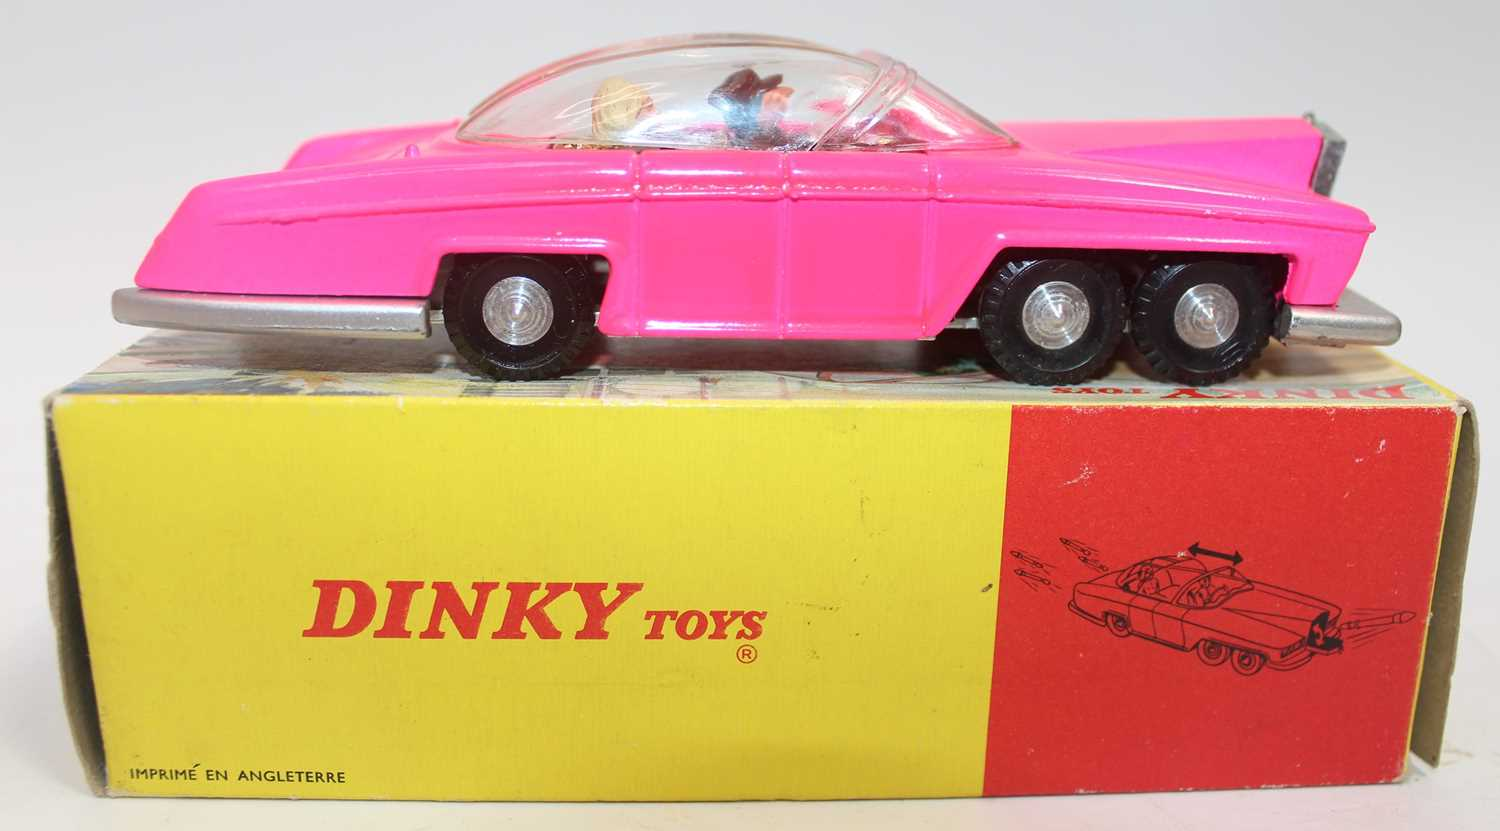 Dinky Toys Boxed 100 Lady Penelopes FAB 1 From TV series 'Thunderbirds' in the rarer fluorescent - Image 6 of 7